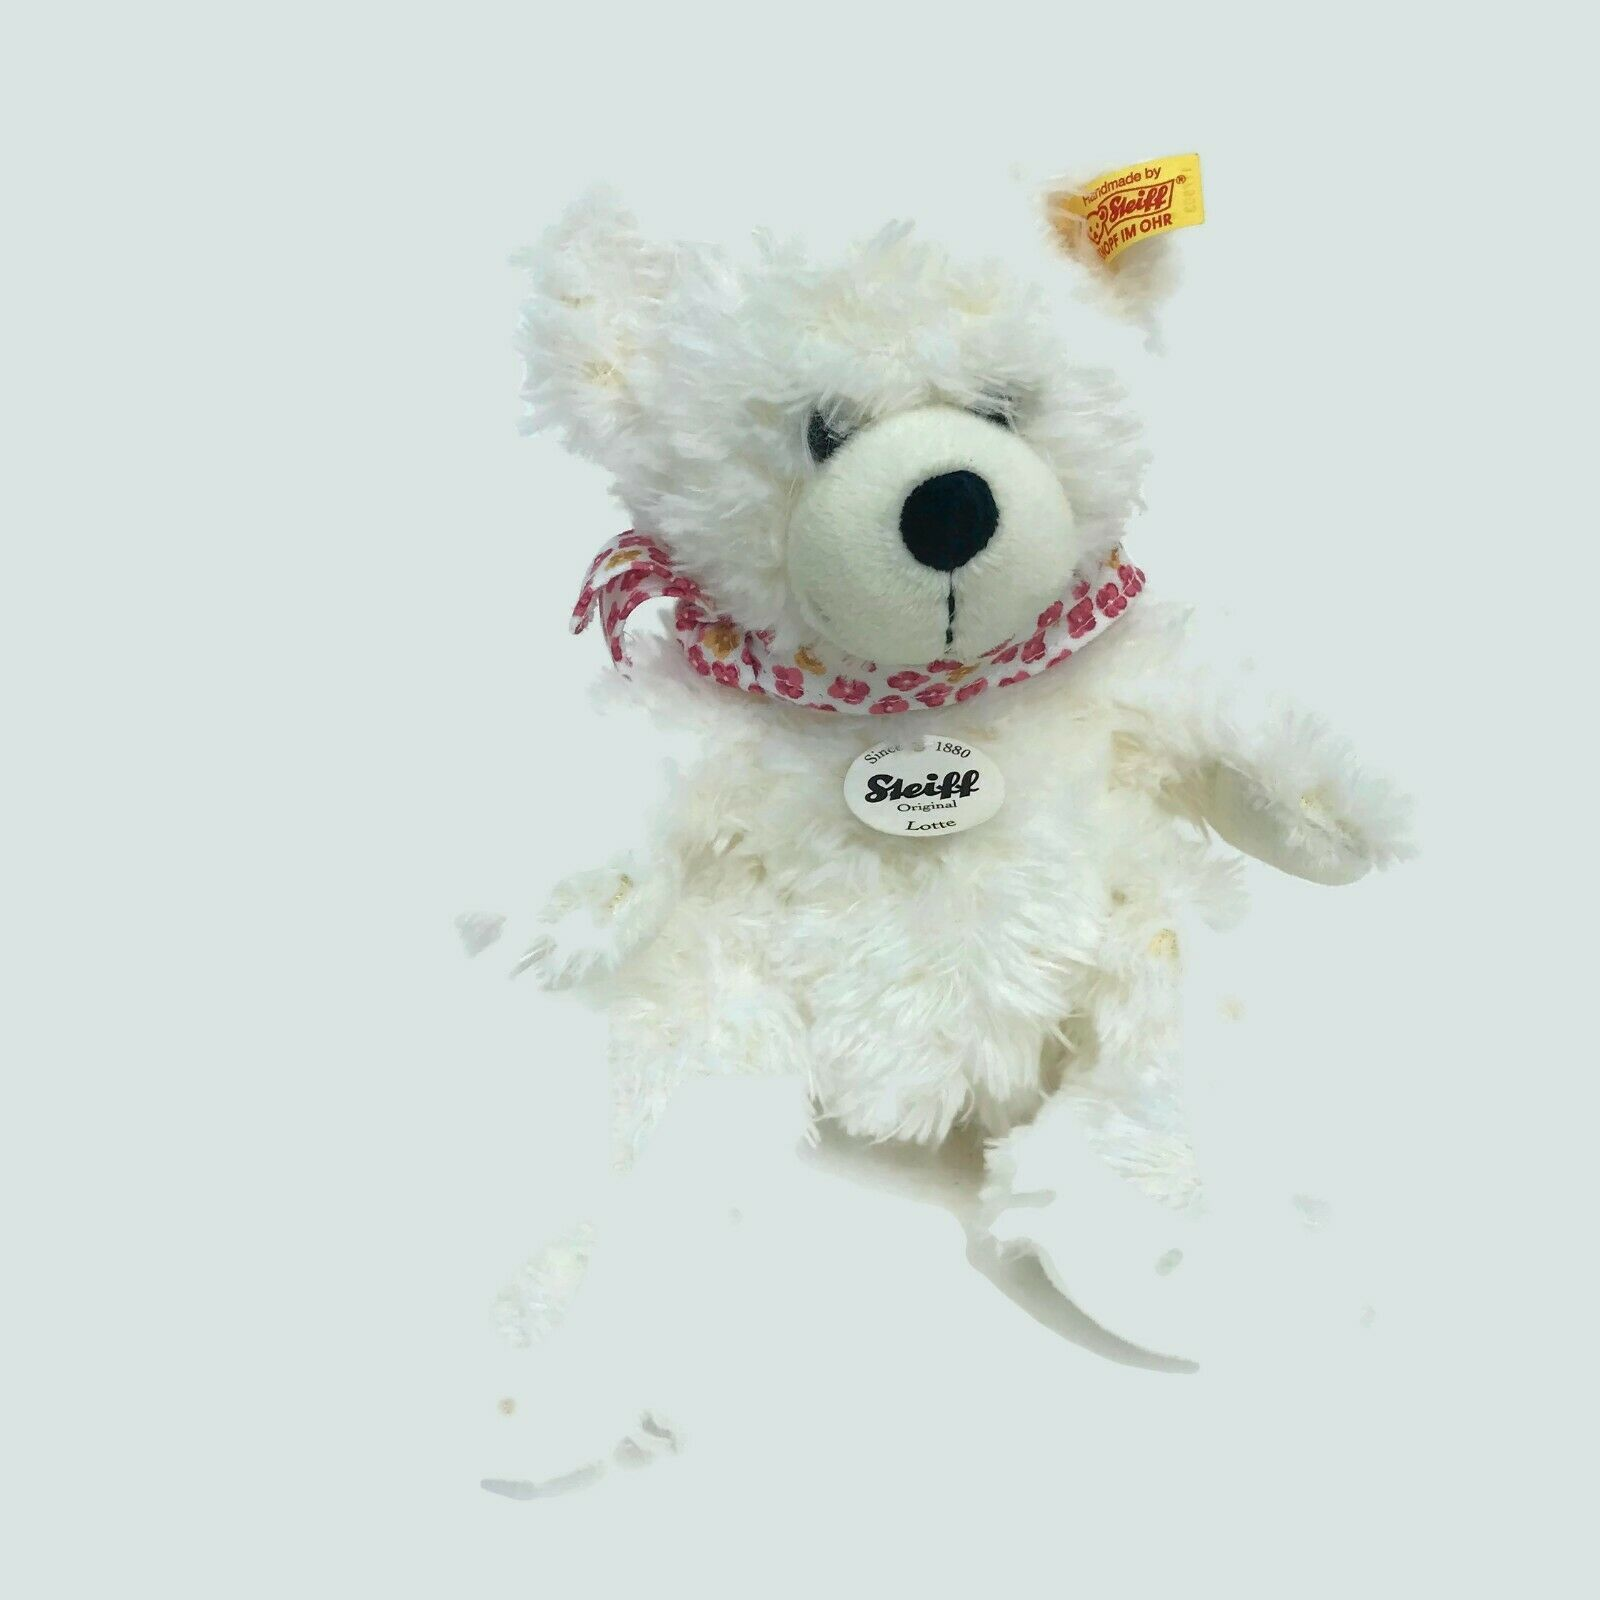 "Steiff Germany Lotte Teddy Bear White Plush 11"" 117503 Soft Nursery Child's Toy"